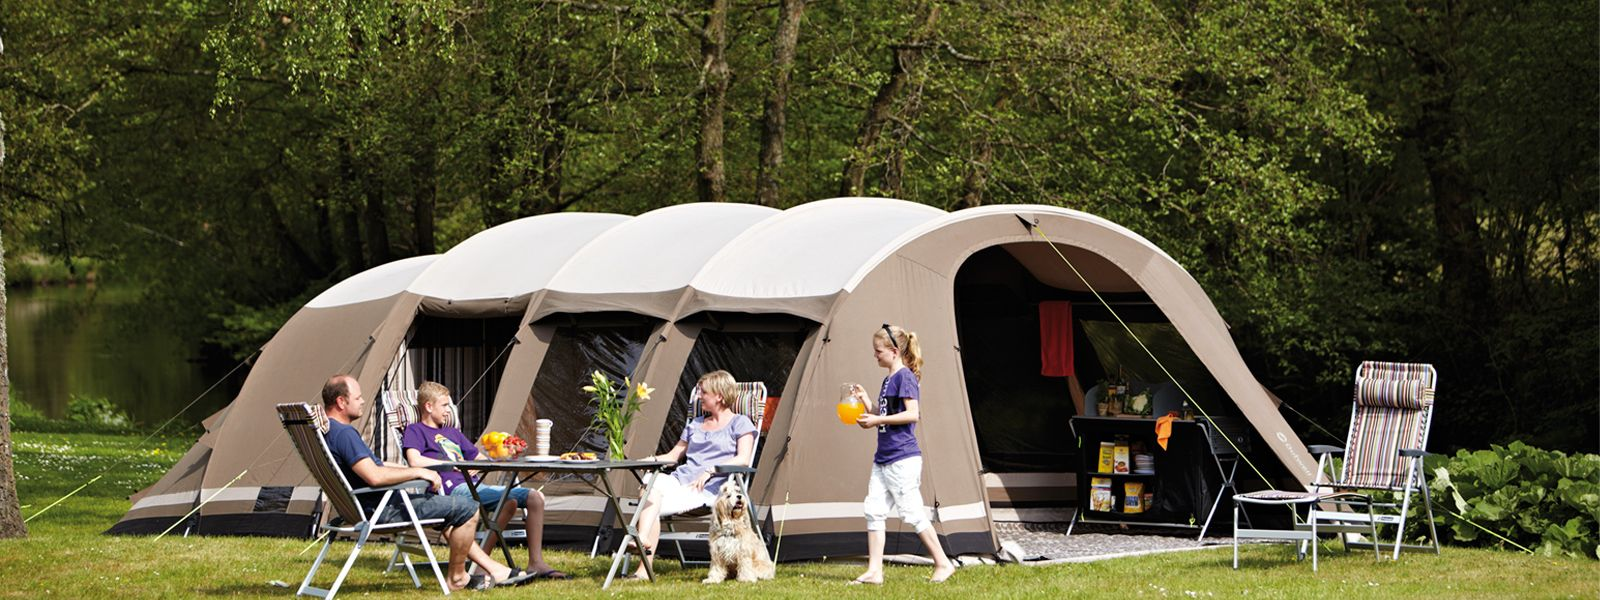 The Ultimate Family Tent Hiking Tent Backpacking Tent Camping Glamping Outdoor Camping